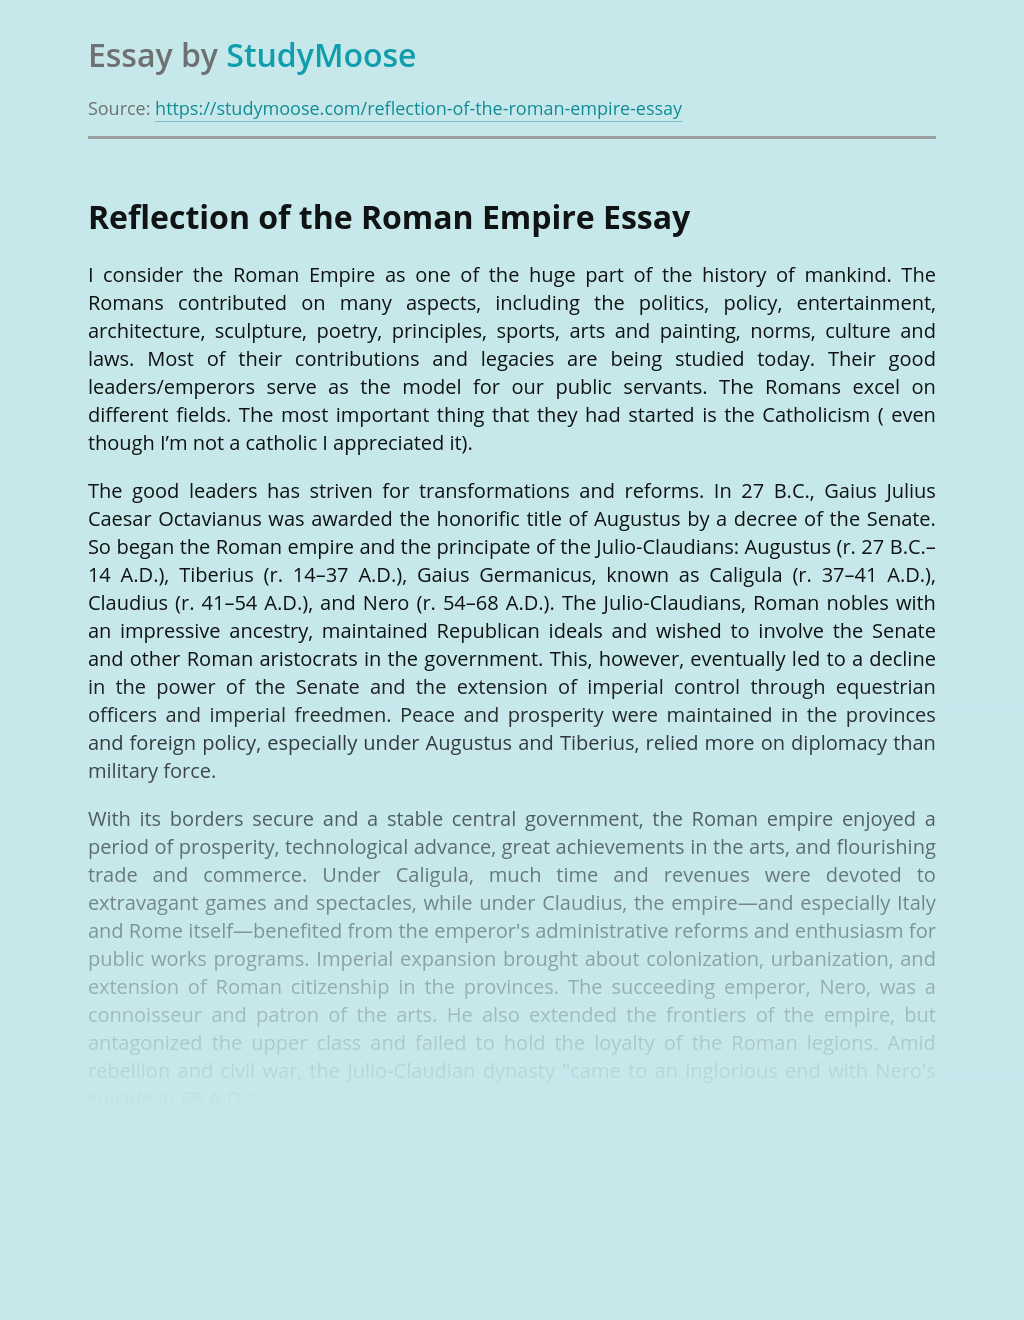 Reflection of the Roman Empire